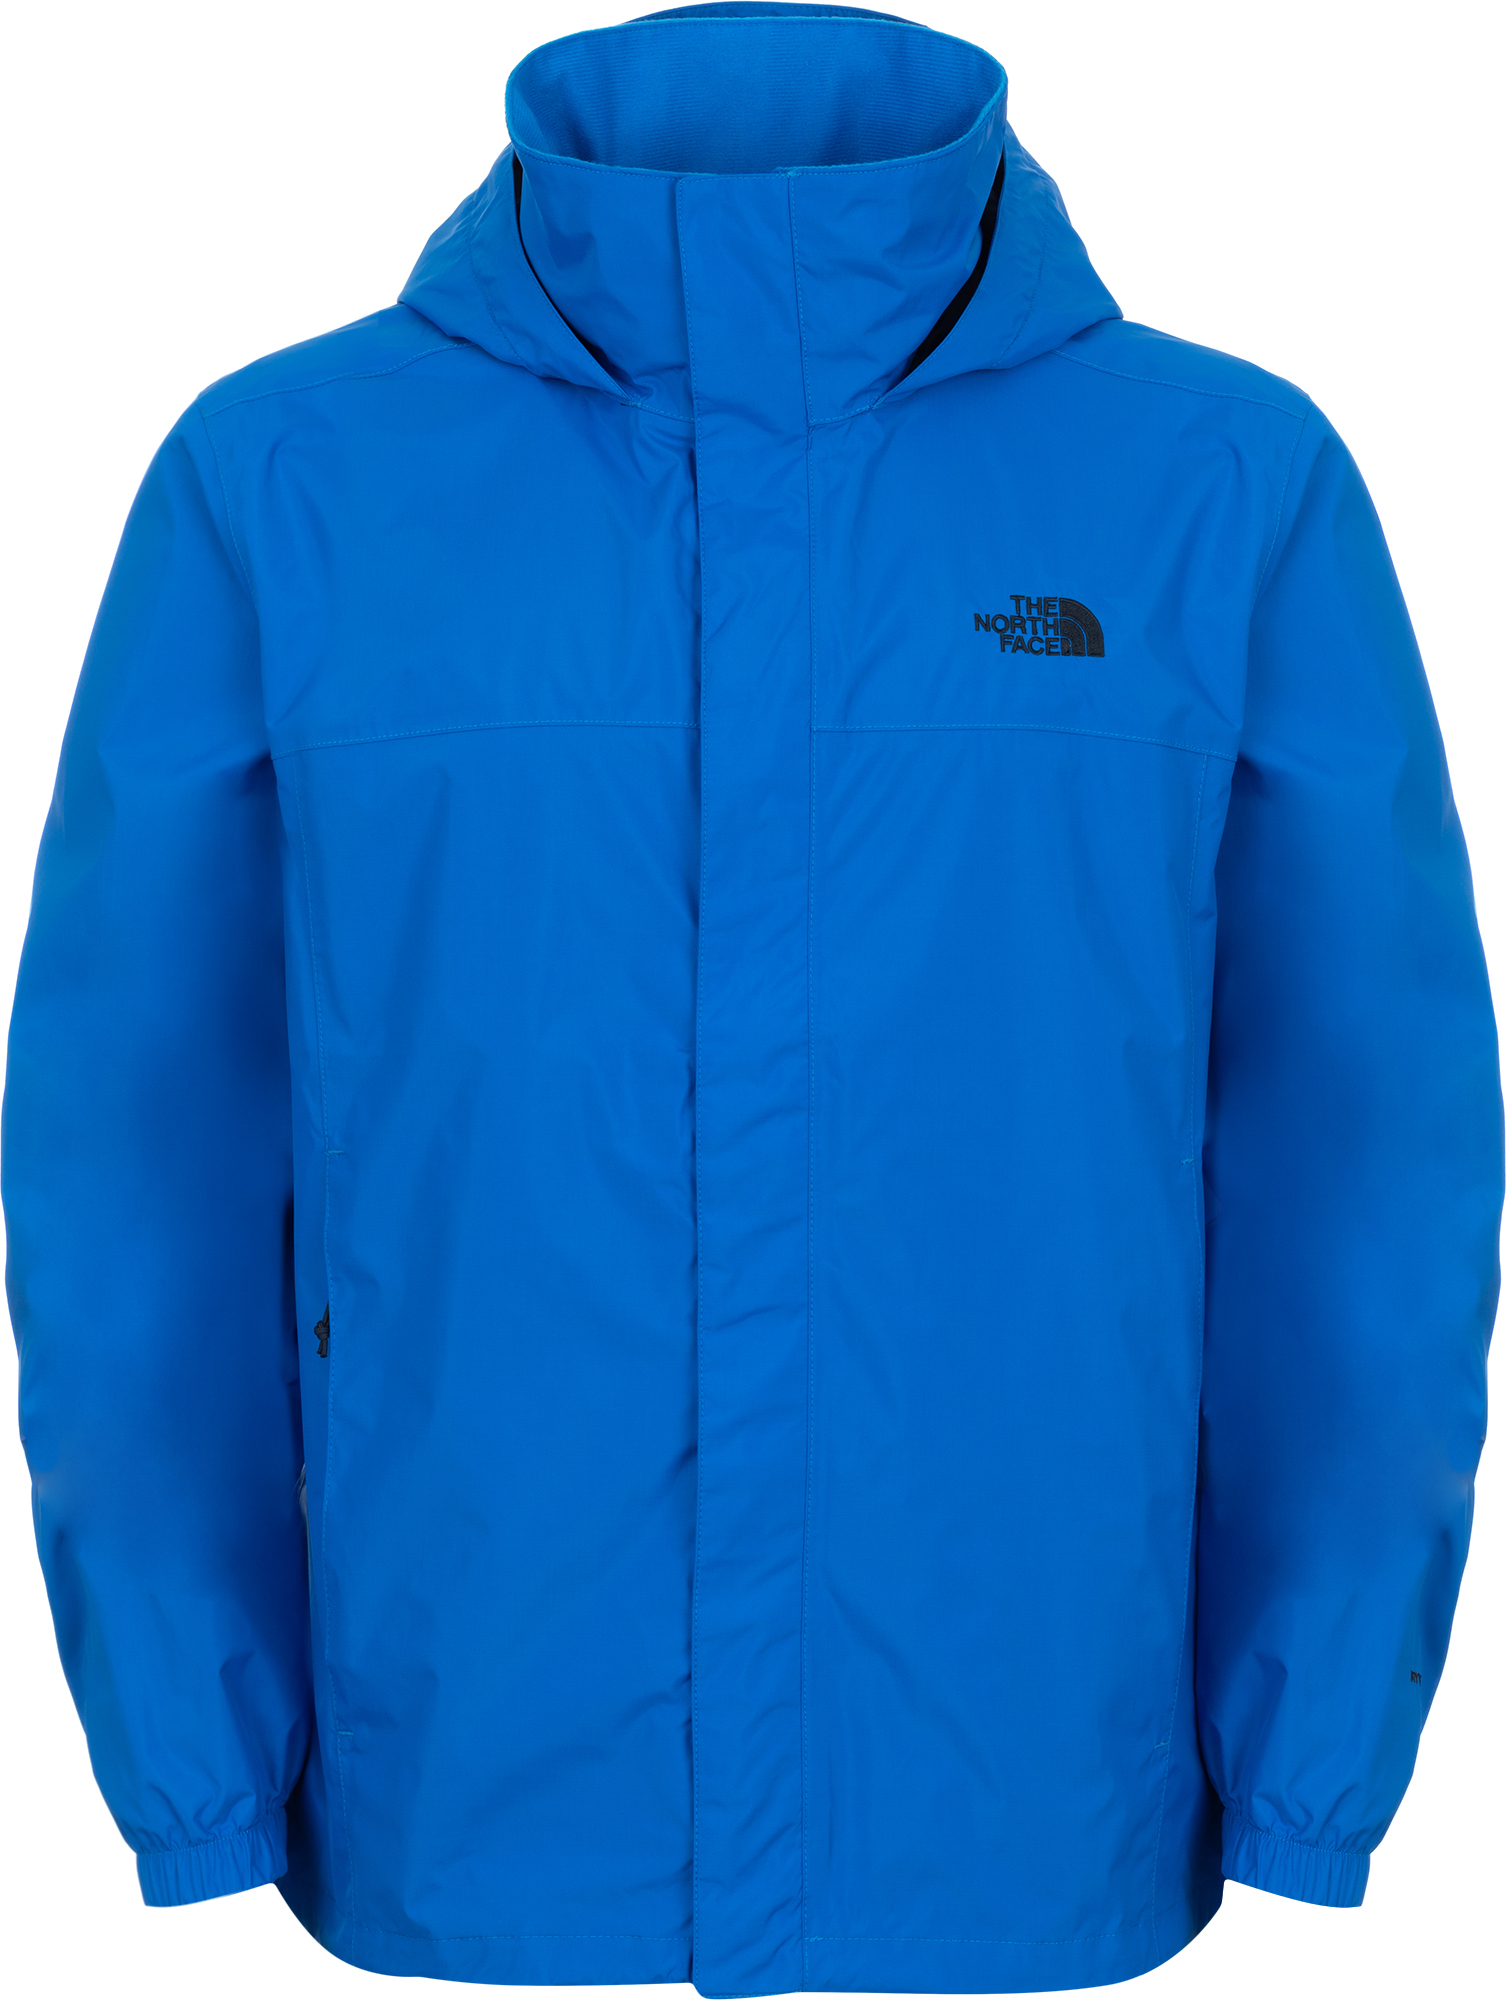 The North Face Ветровка мужская The North Face Resolve 2, размер 48